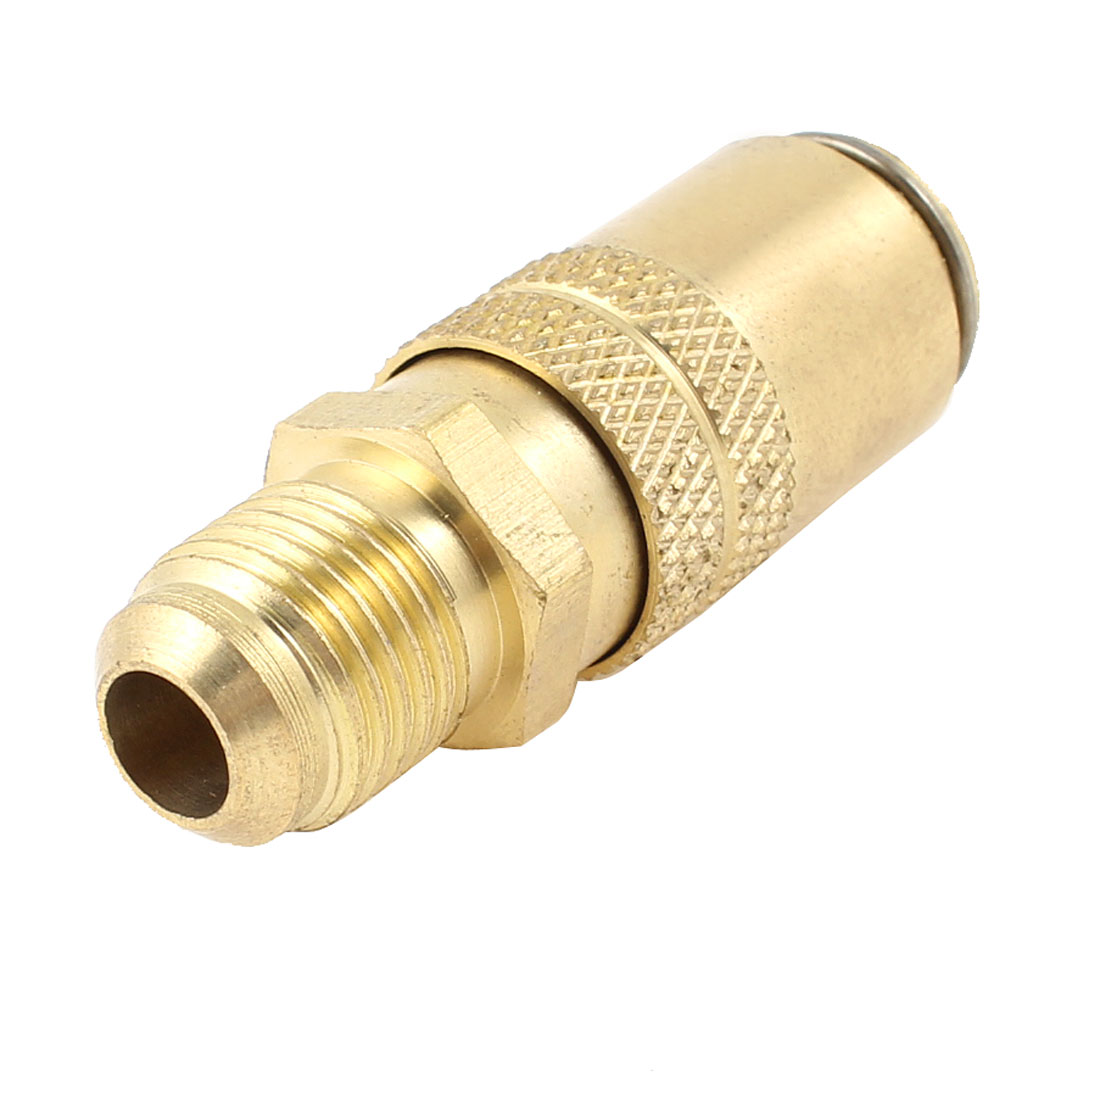 Straight 14mm Male Thread Air Pneumatic Quick Fittings Coupler Connector